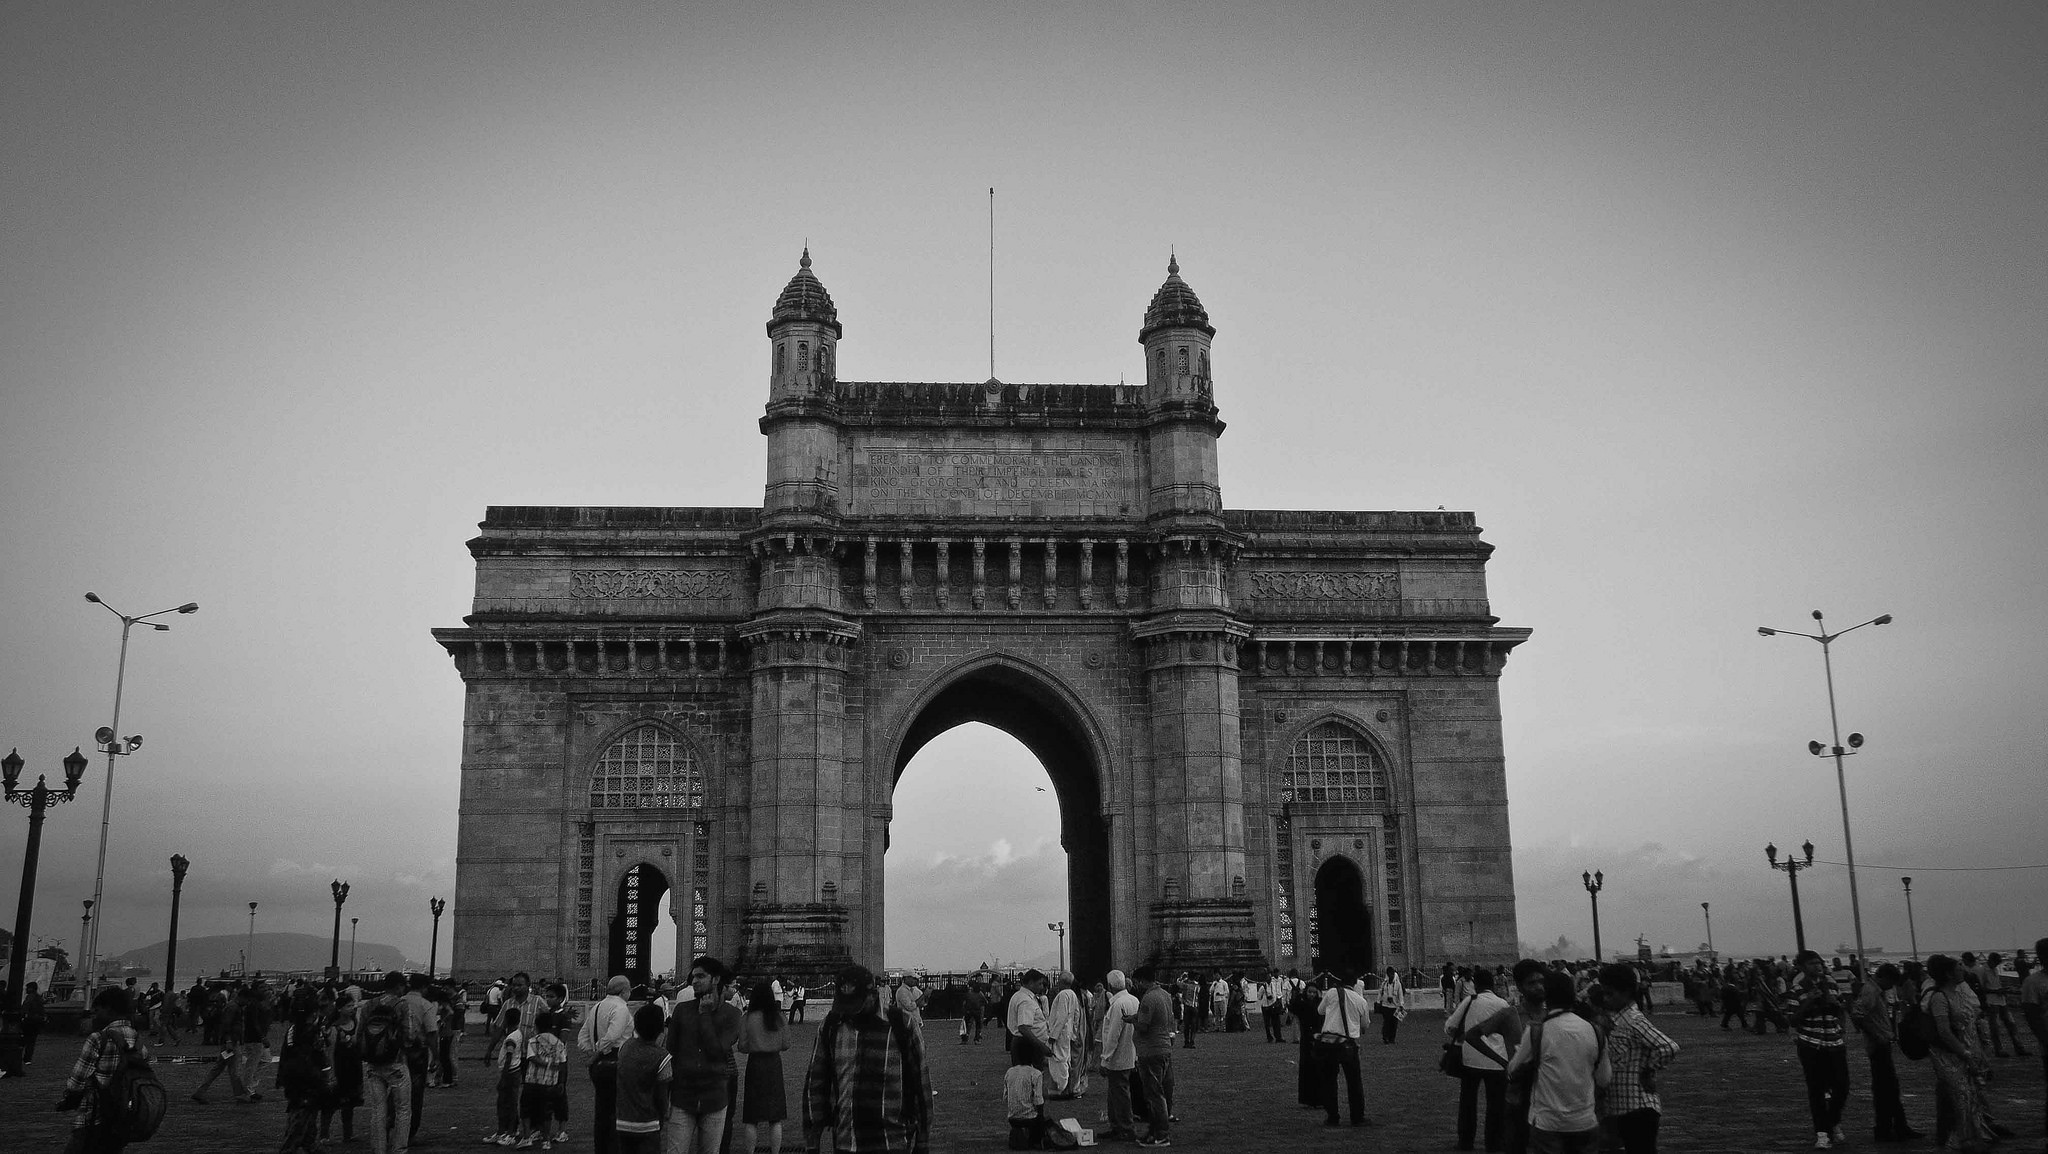 The Gateway of India © Flickr / Naveen Dadan